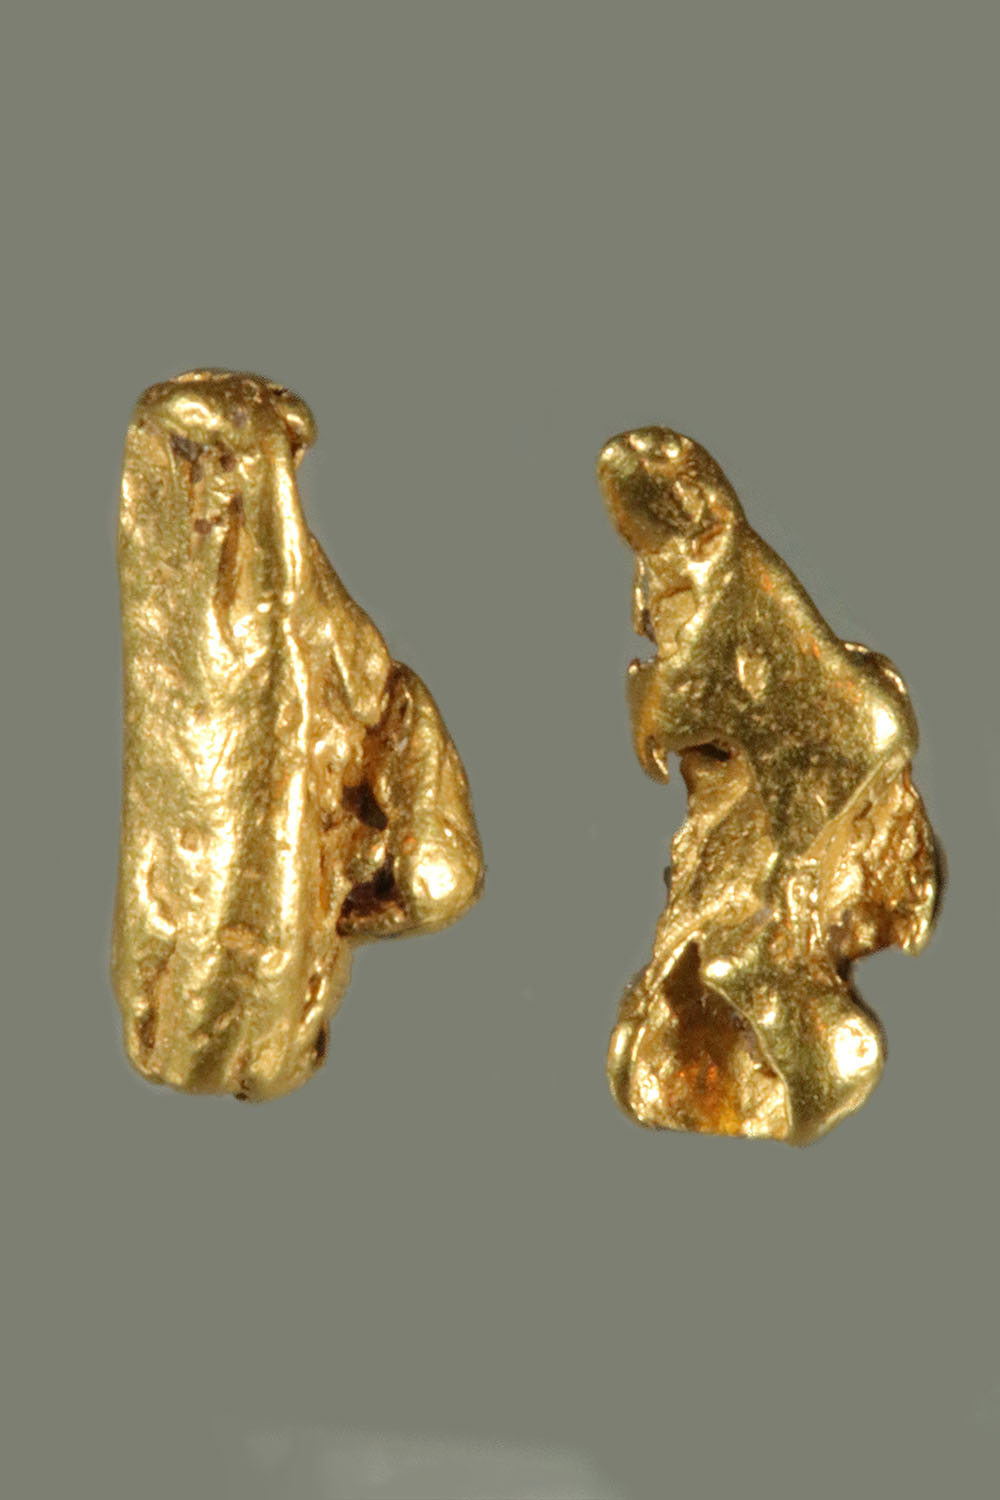 Shiny Pair of Natural Gold Nuggets from the Bering Sea